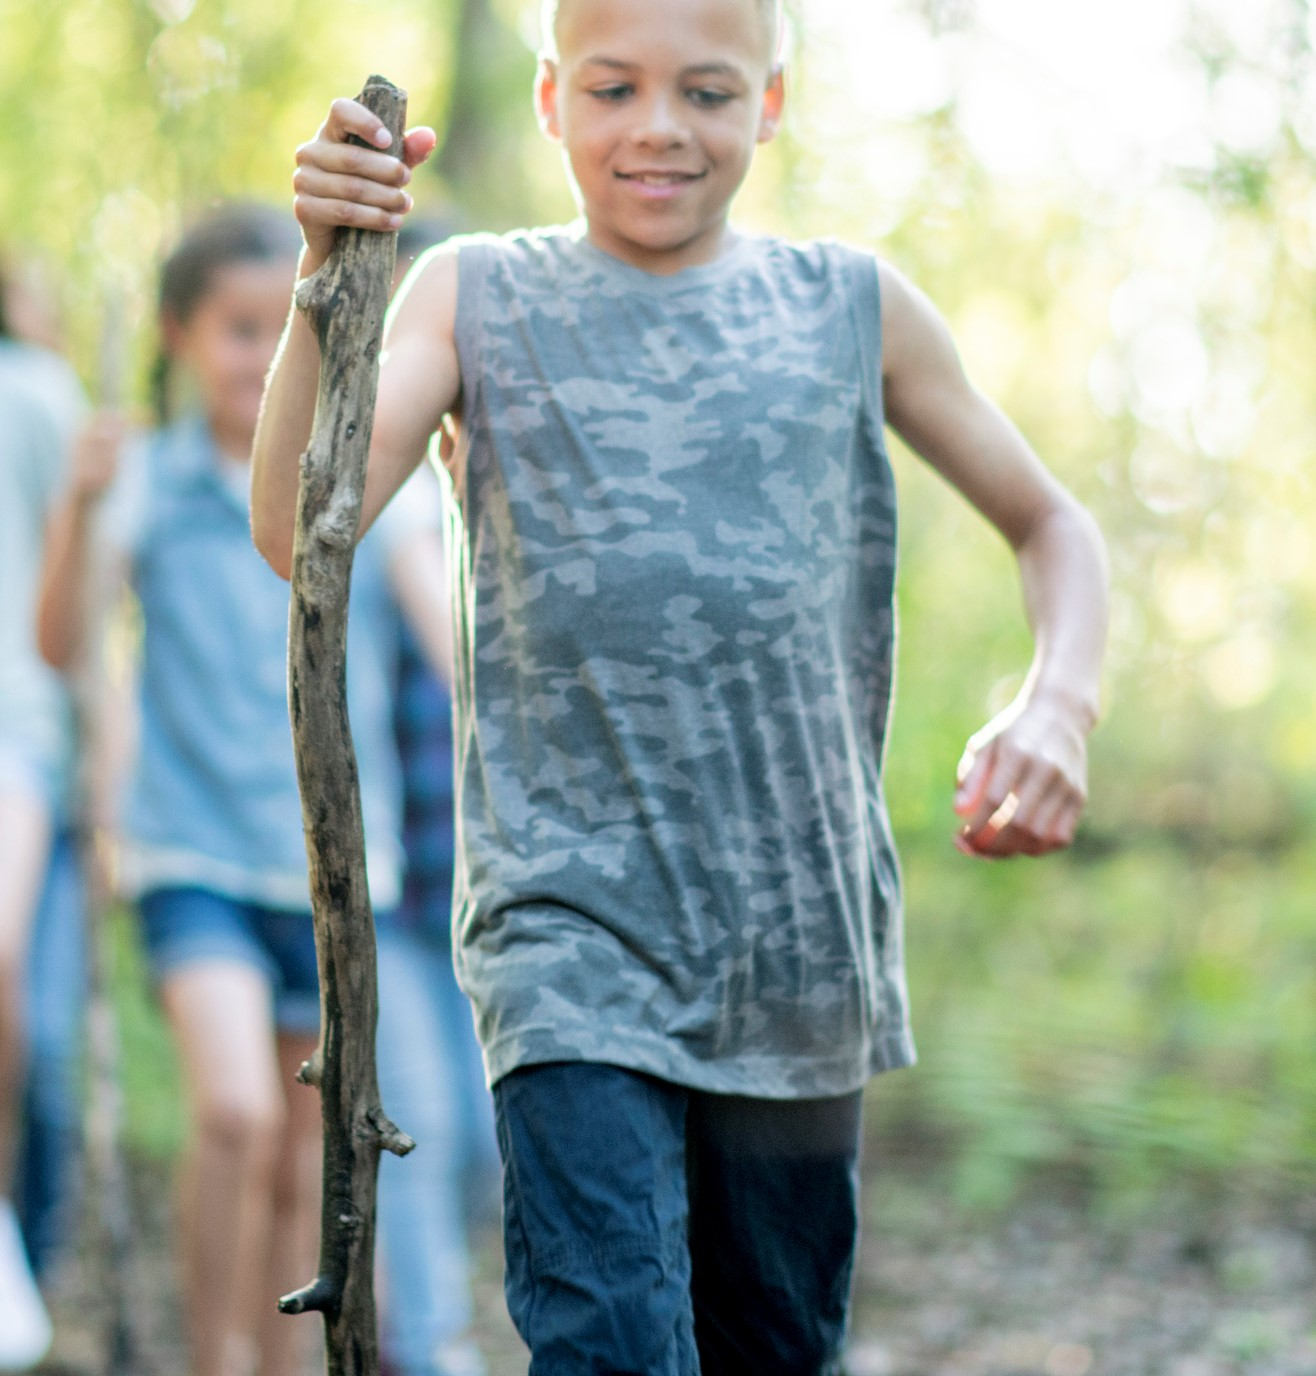 Executive Director's report: Let's Send kids to camp